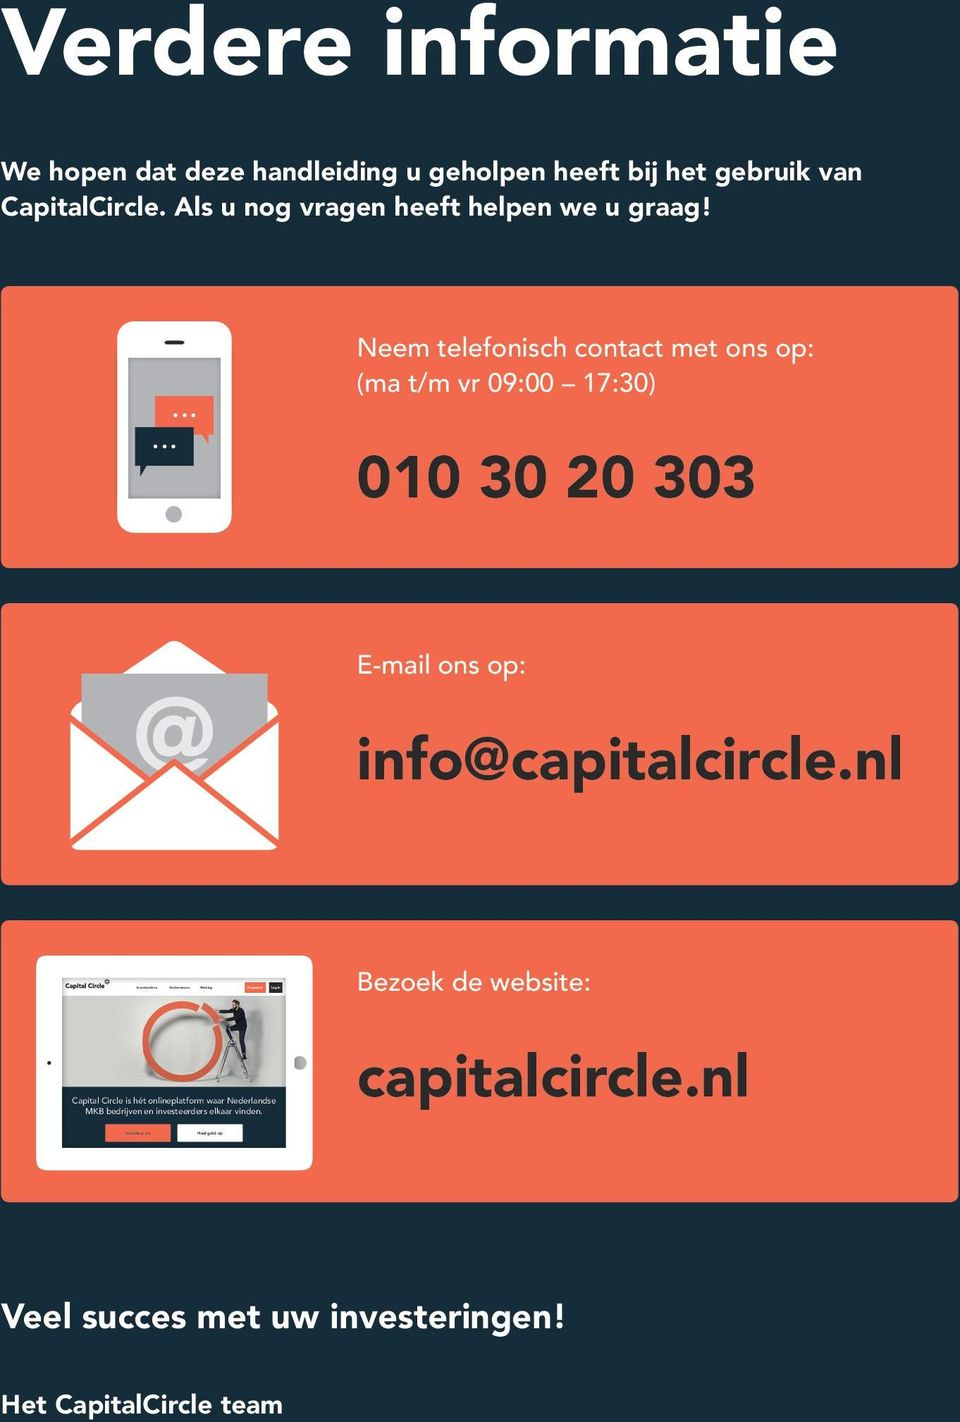 Neem telefonisch contact met ons op: (ma t/m vr 09:00 17:30) 010 30 20 303 E-mail ons op: info@capitalcircle.